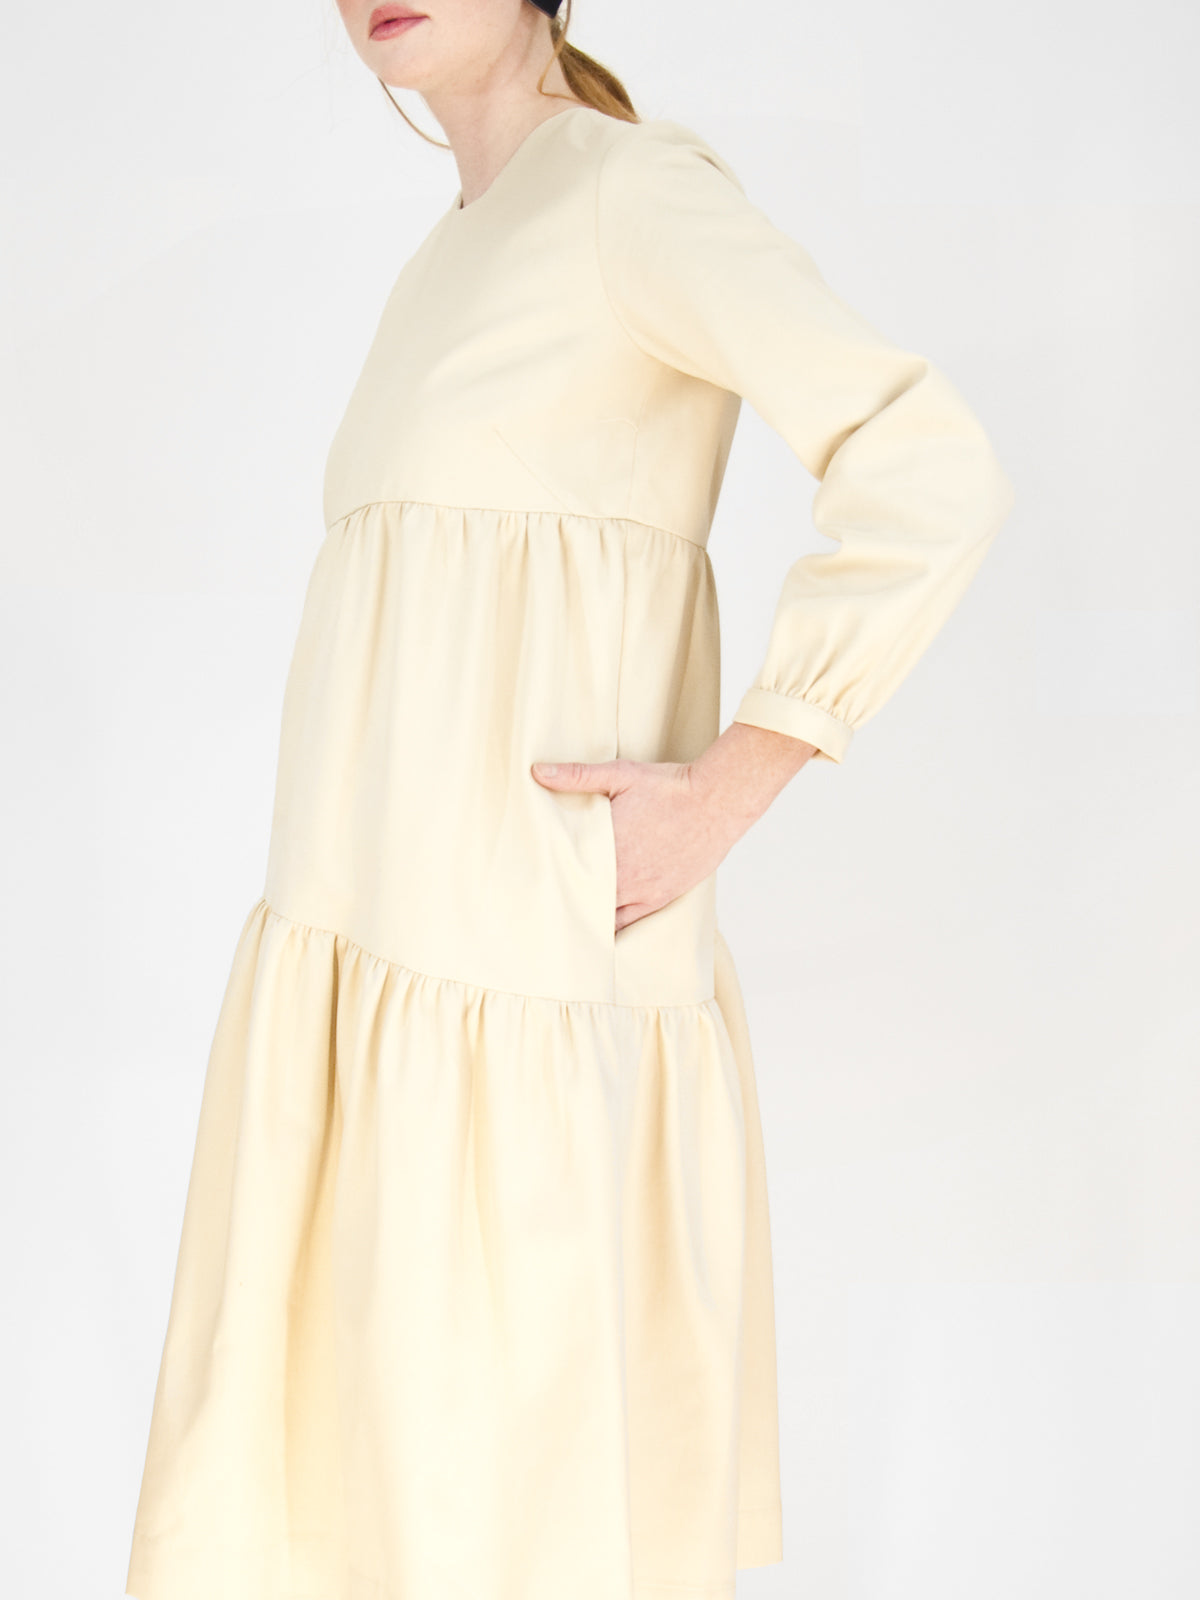 Beth - Poppy Dress / Natural Twill